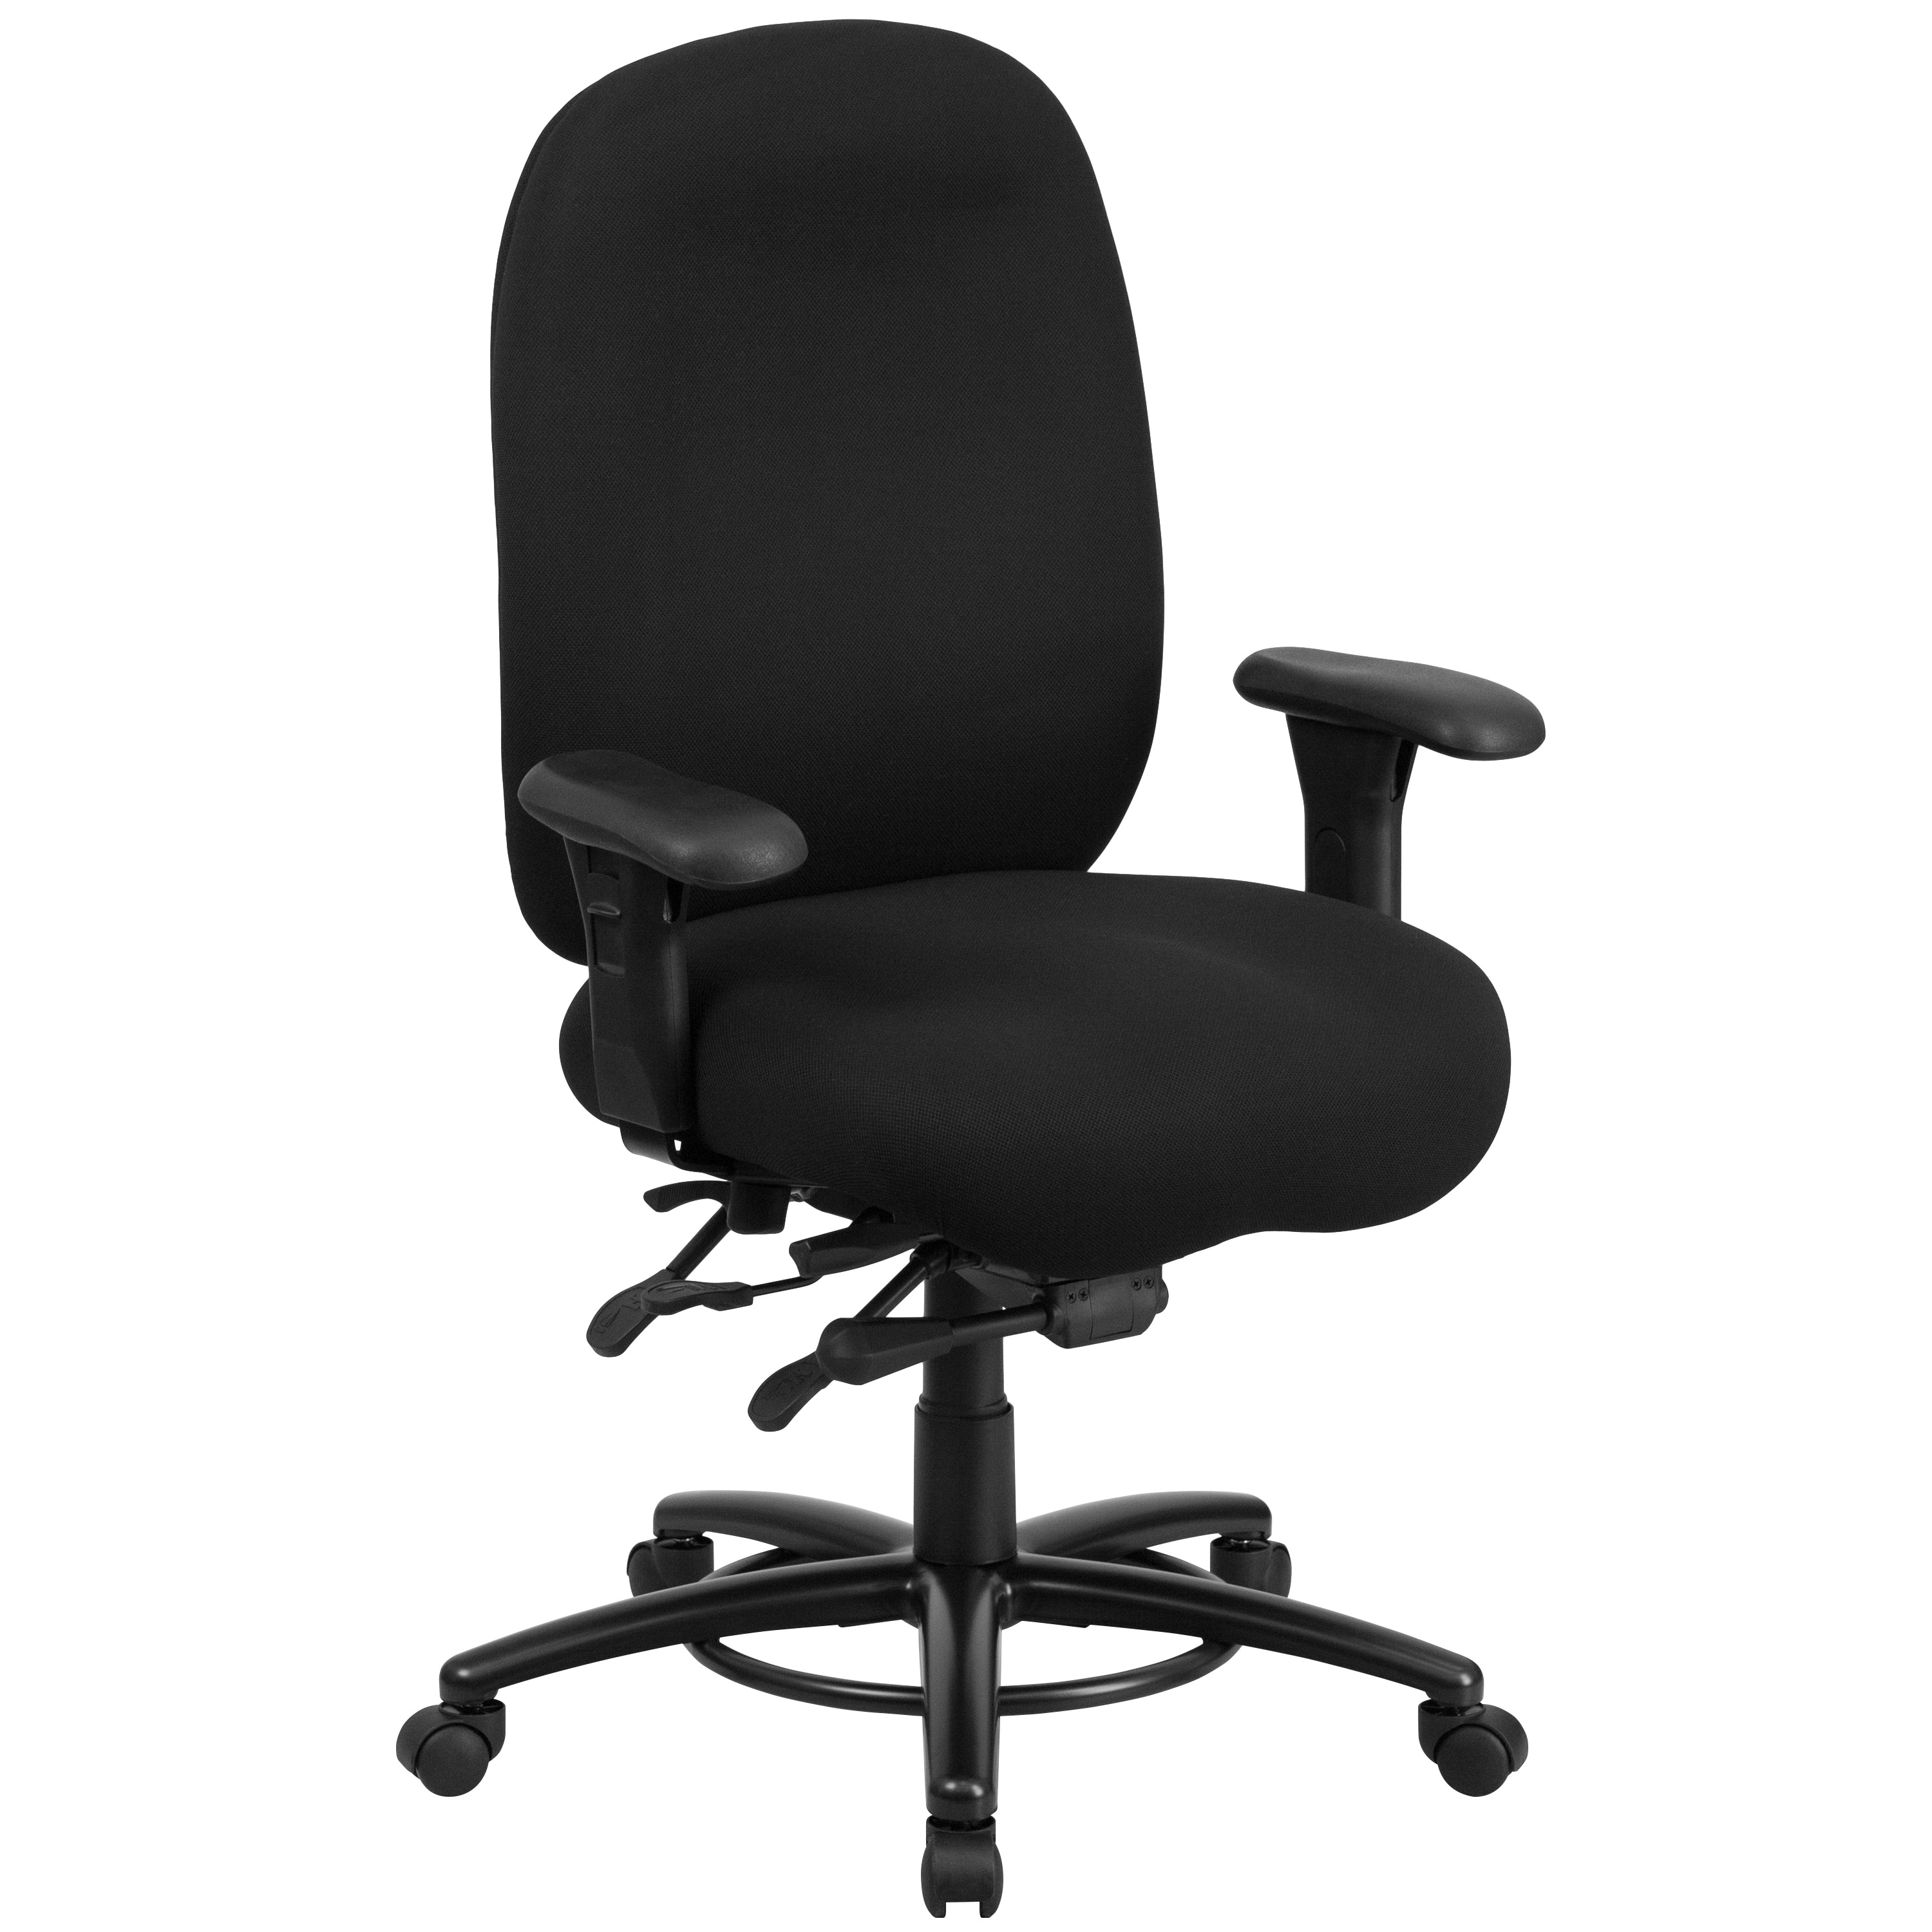 Office chairs for big and tall - Hercules 24 7 Intensive Use Multi Shift Big And Tall Black Fabric Multi